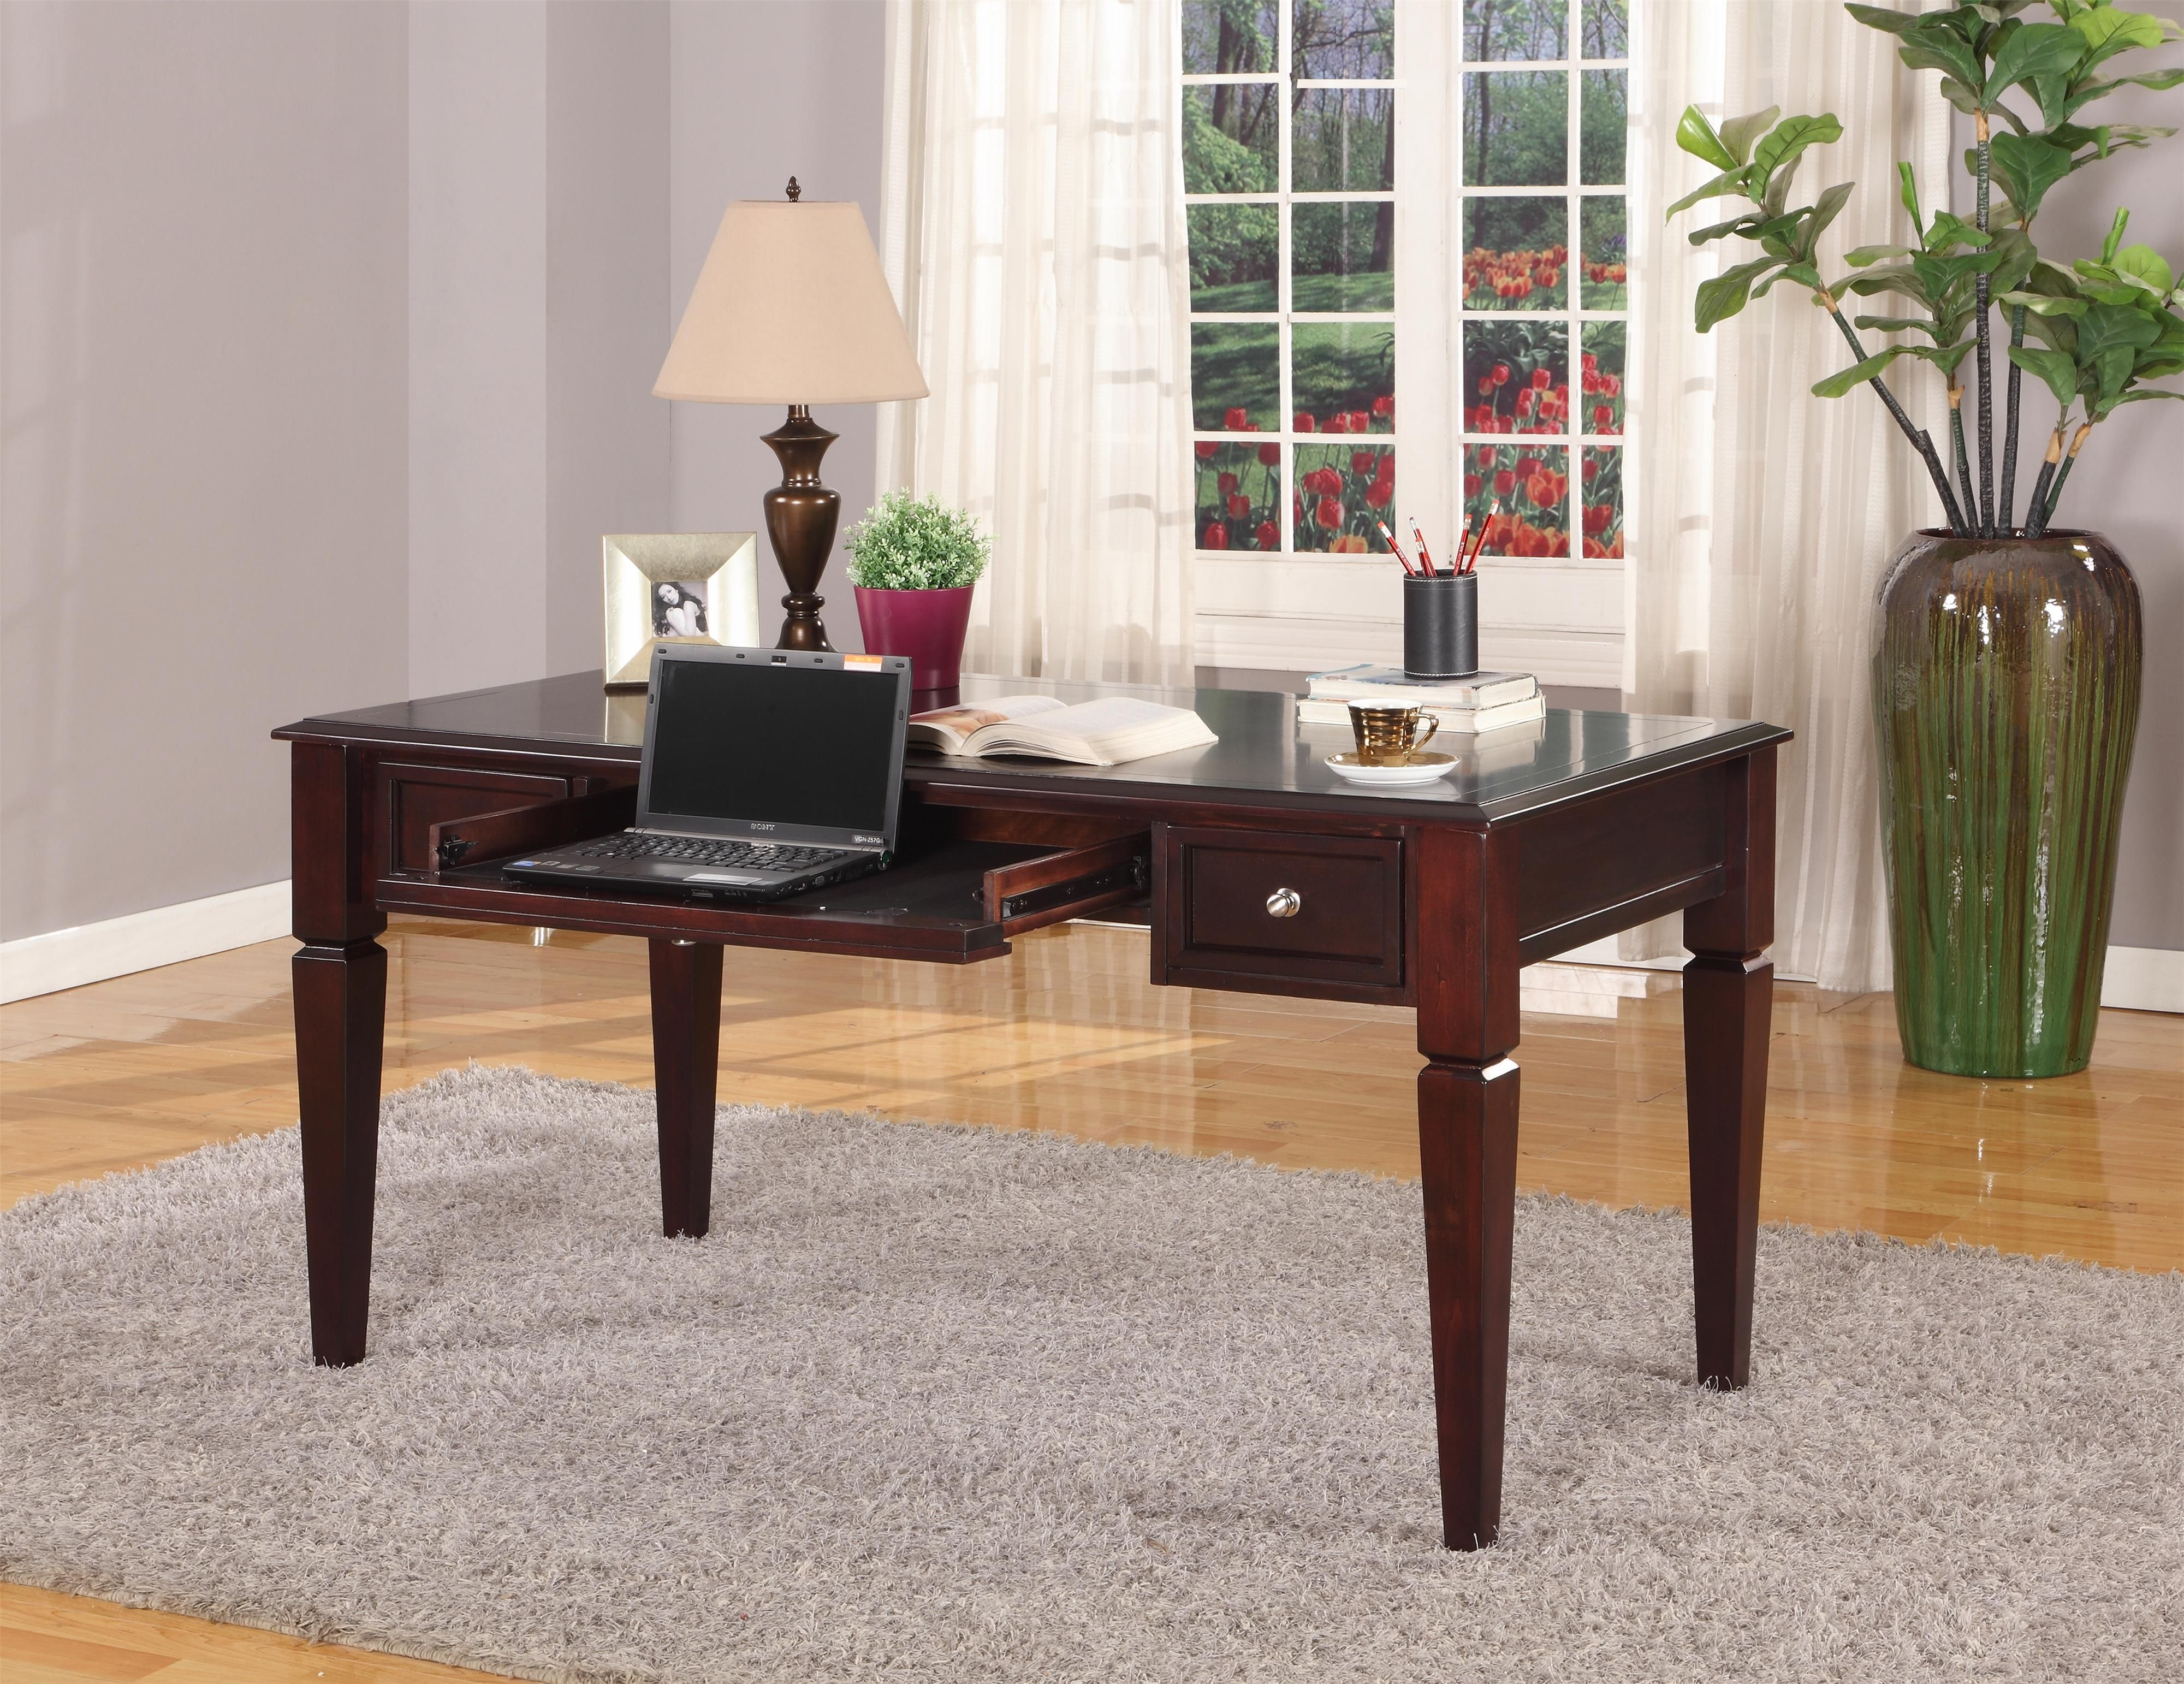 """Parker House Boston 60"""" Writing Desk with Drop Front Keyboard Drawer and 2 Task Drawers at Sheely's Furniture & Appliance"""